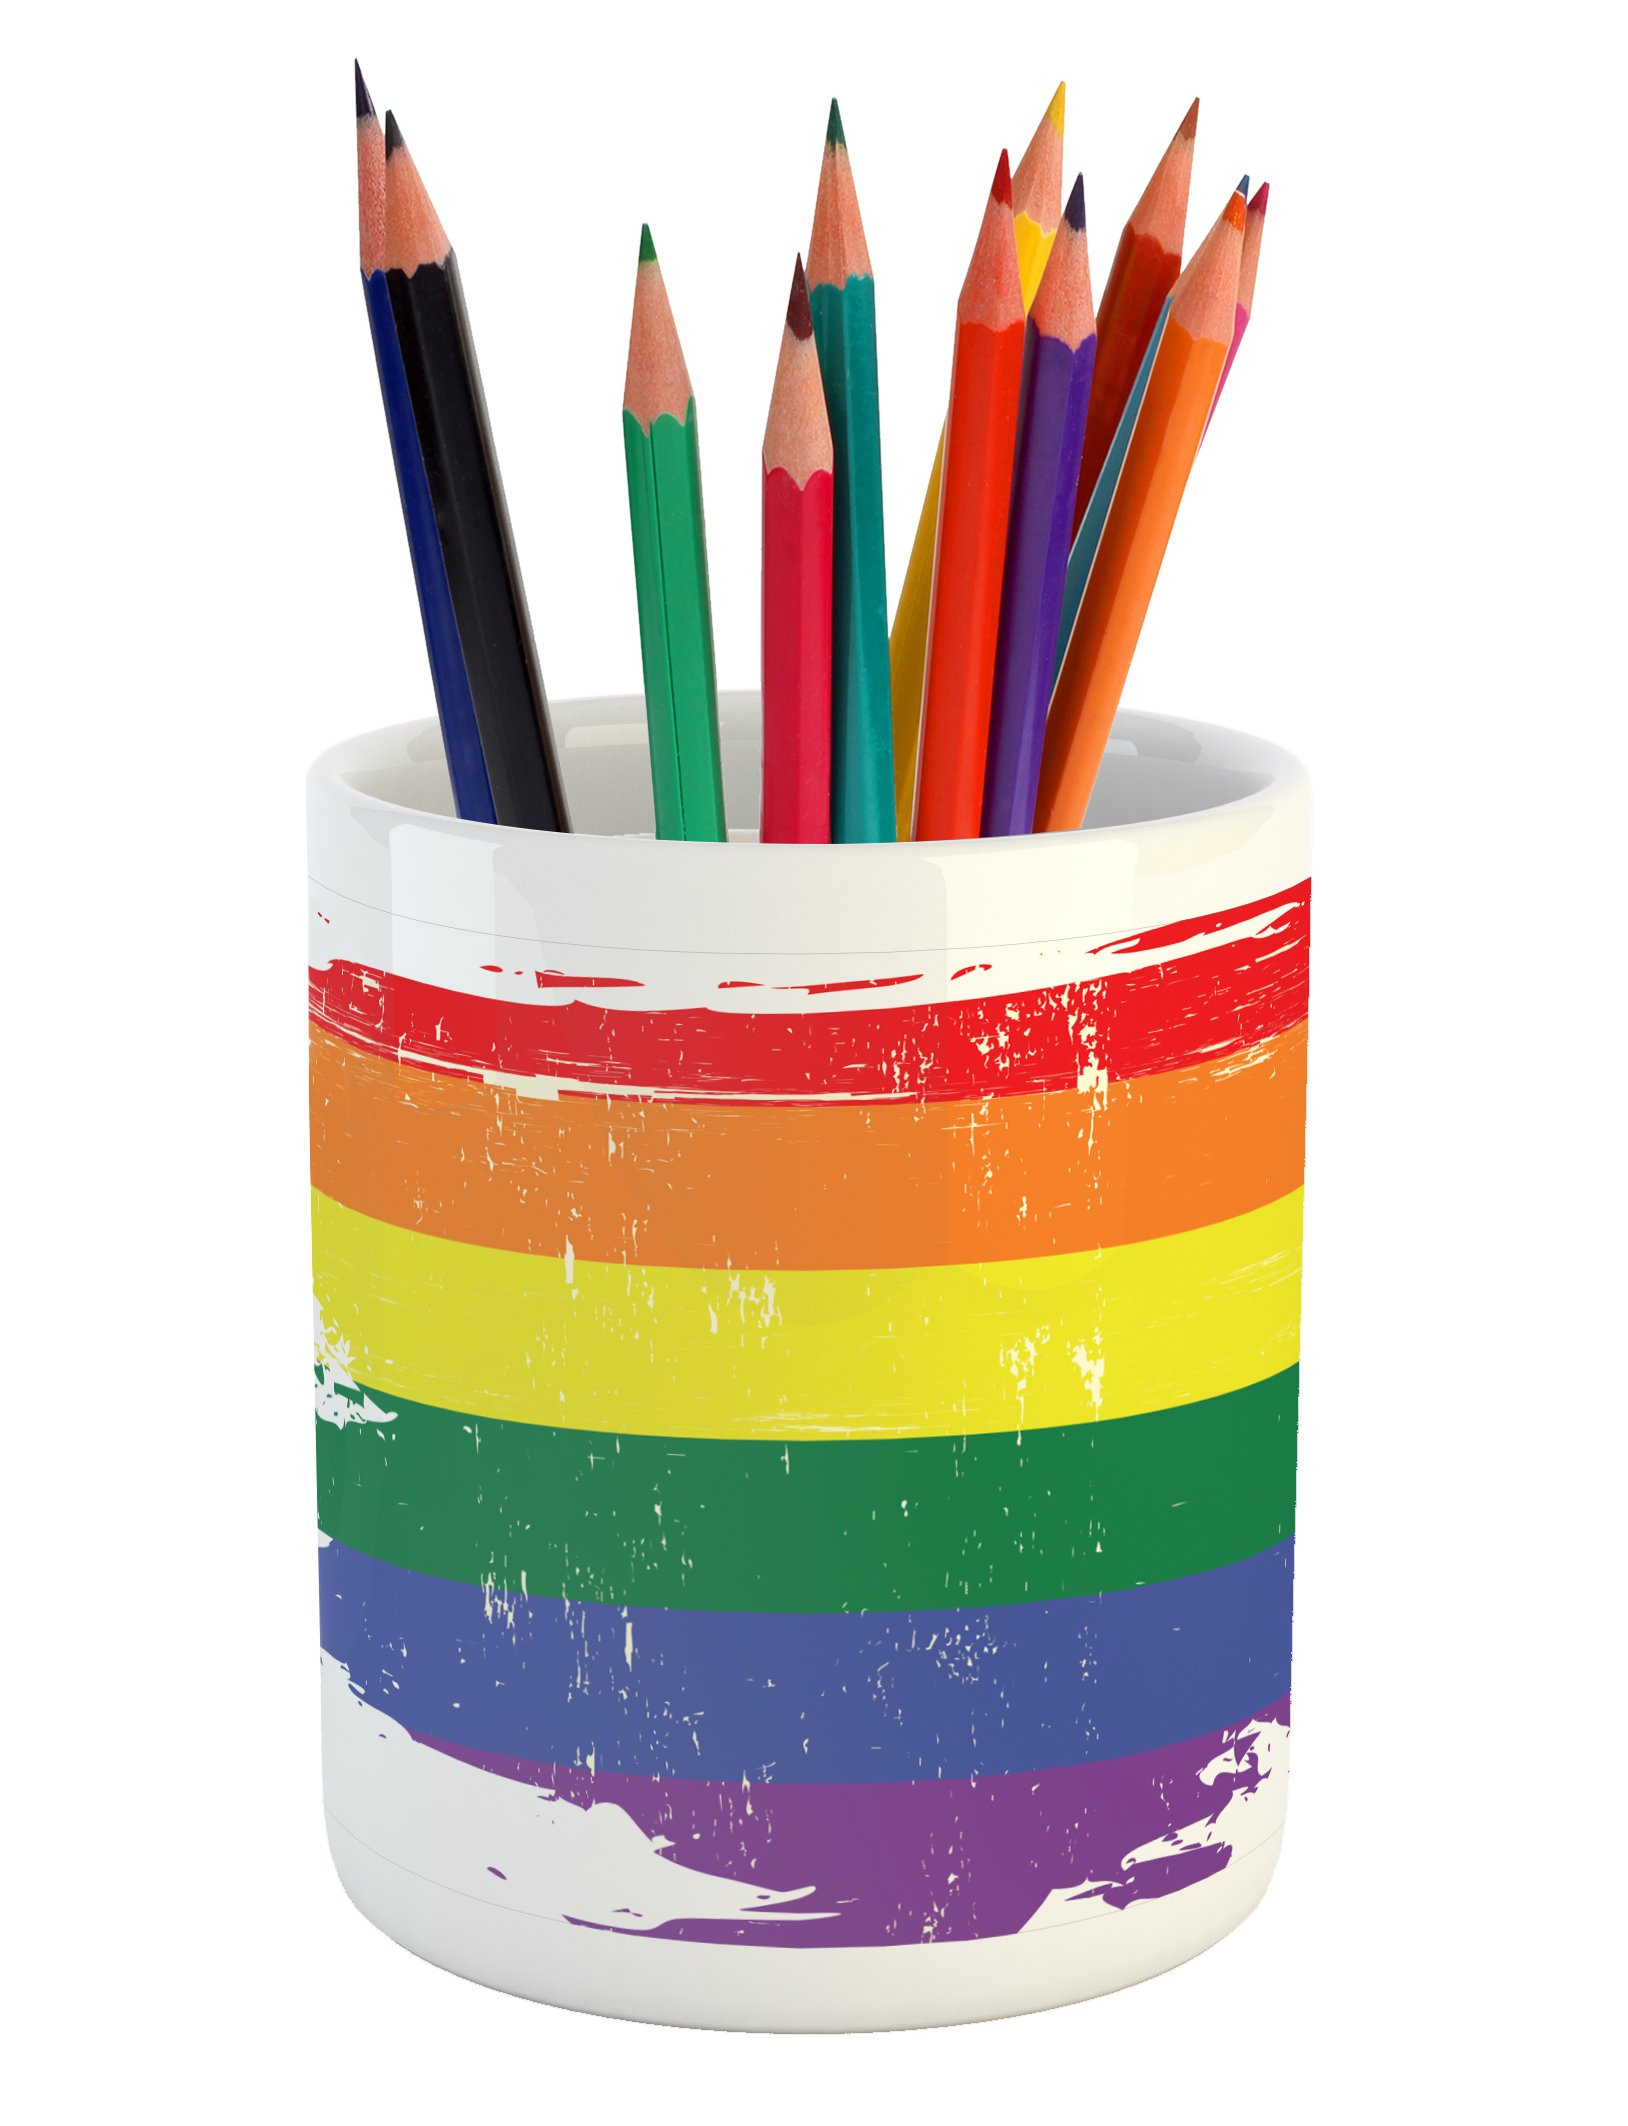 Ambesonne Vintage Rainbow Pencil Pen Holder, Colorful Grunge LGBT Flag Design Worn Out Stripes of Paint Gay Culture, Printed Ceramic Pencil Pen Holder for Desk Office Accessory, Multicolor